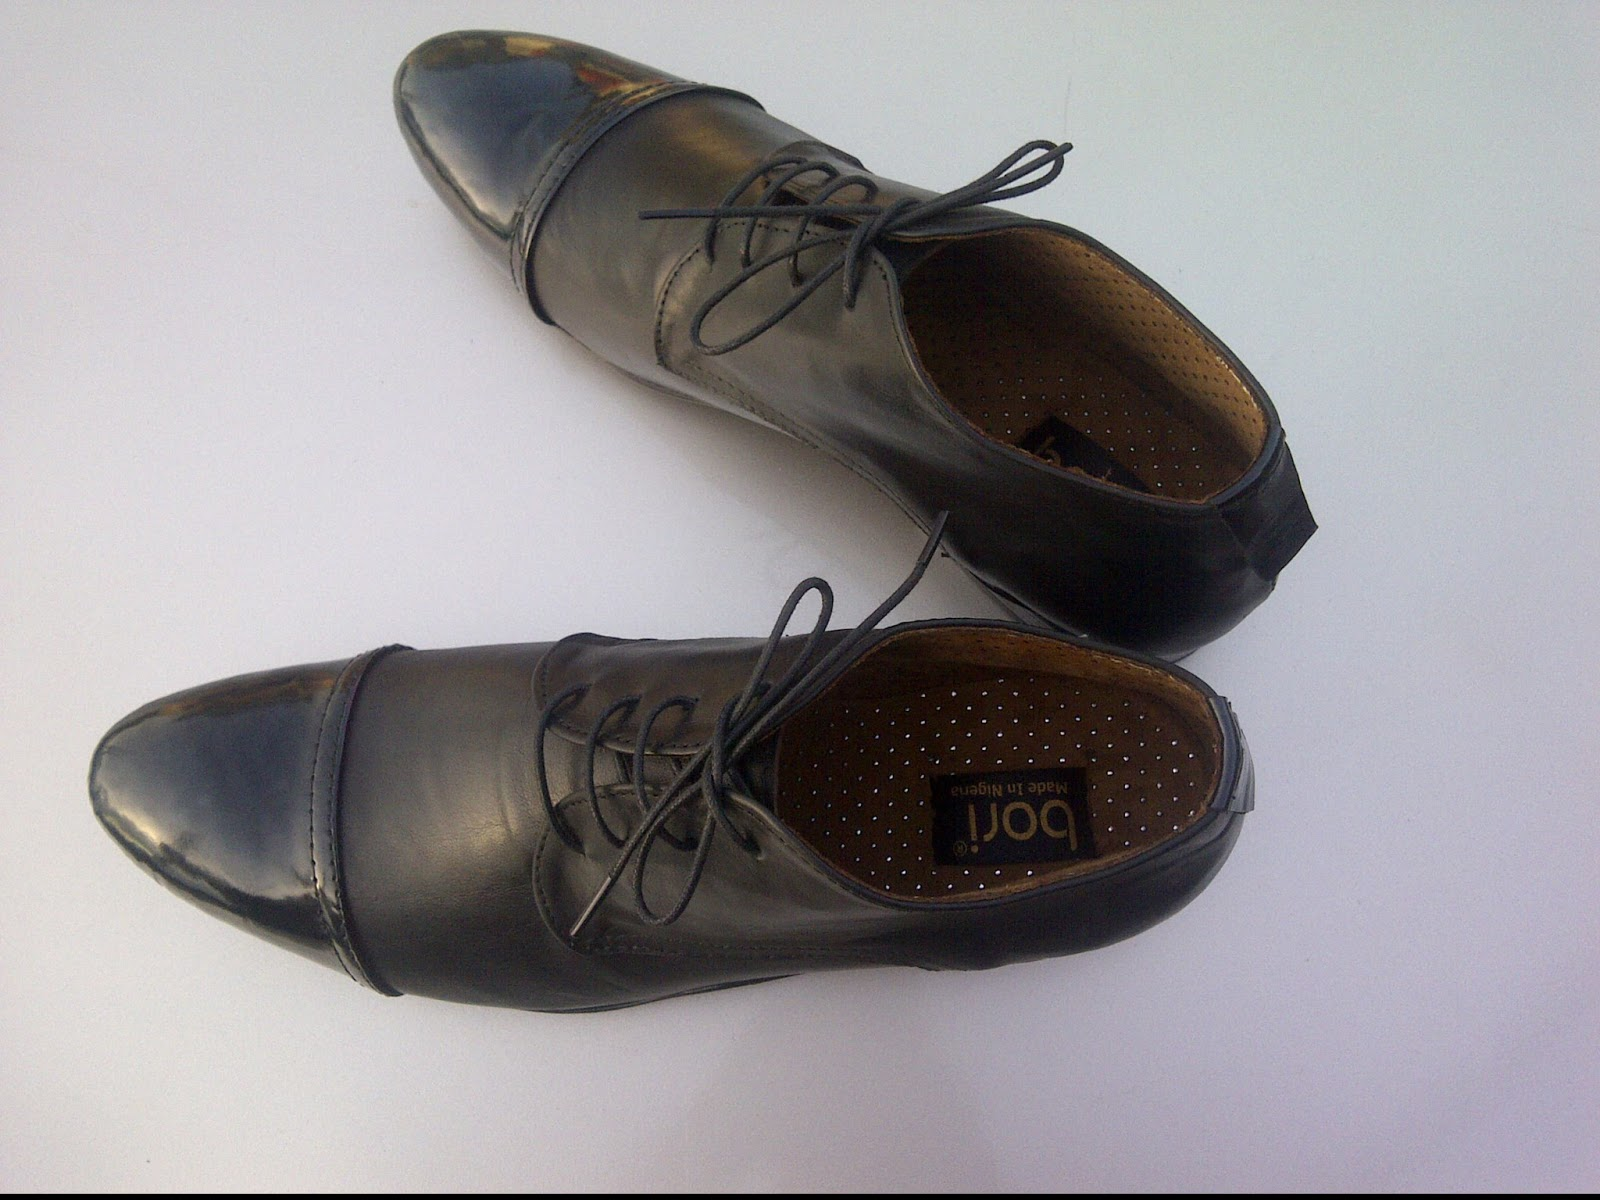 Synthetic Leather Shoes Good Or Bad